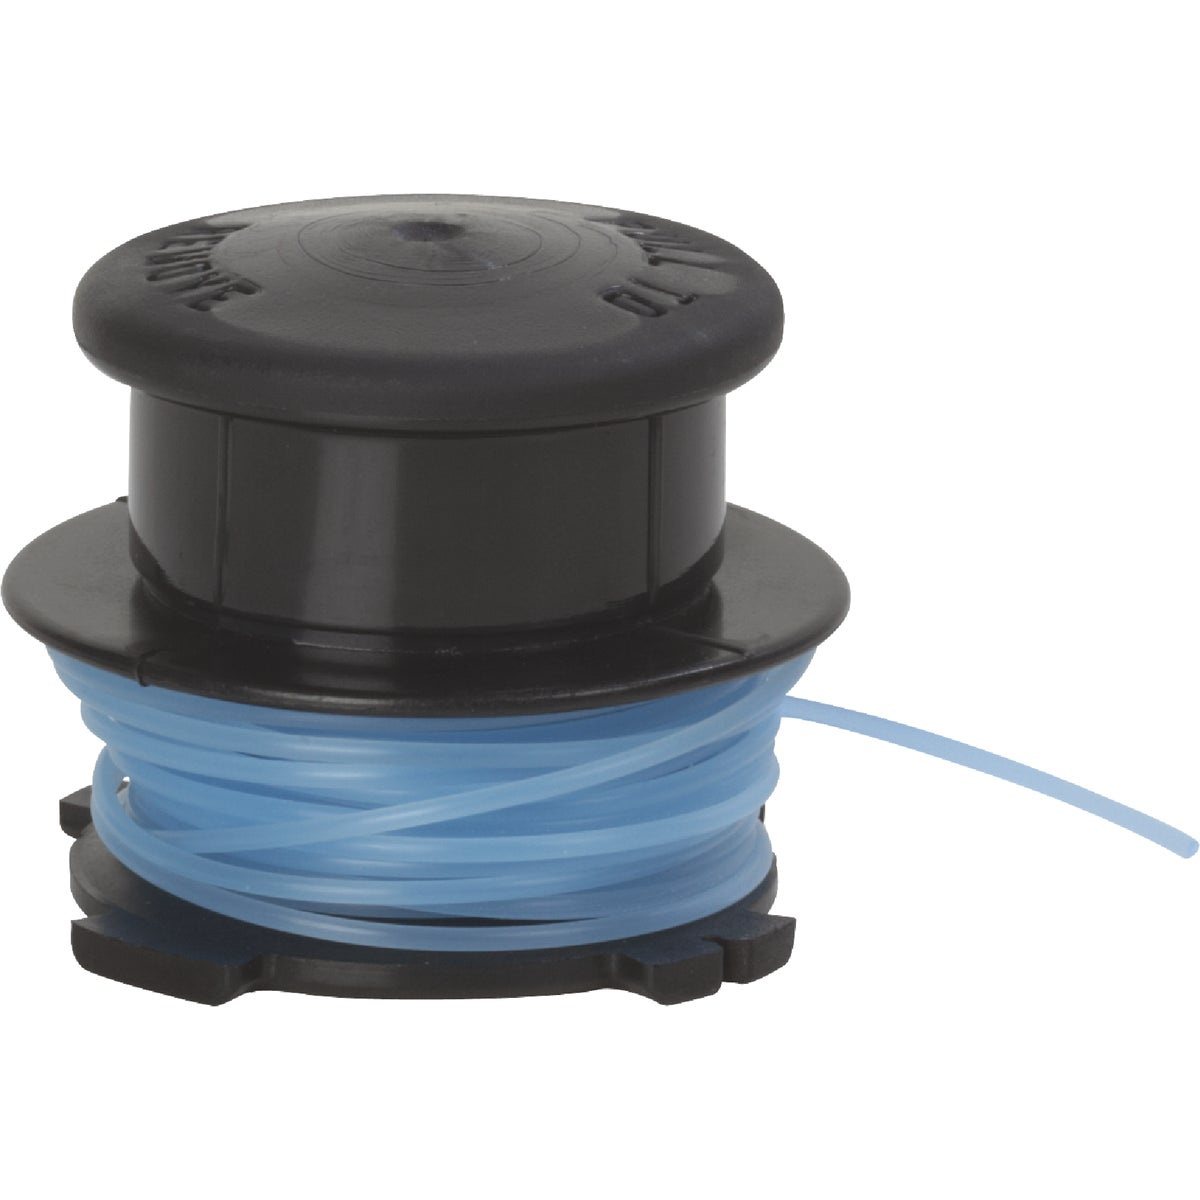 .065 REPLC TRIMMER SPOOL - 952-711527 by Poulan